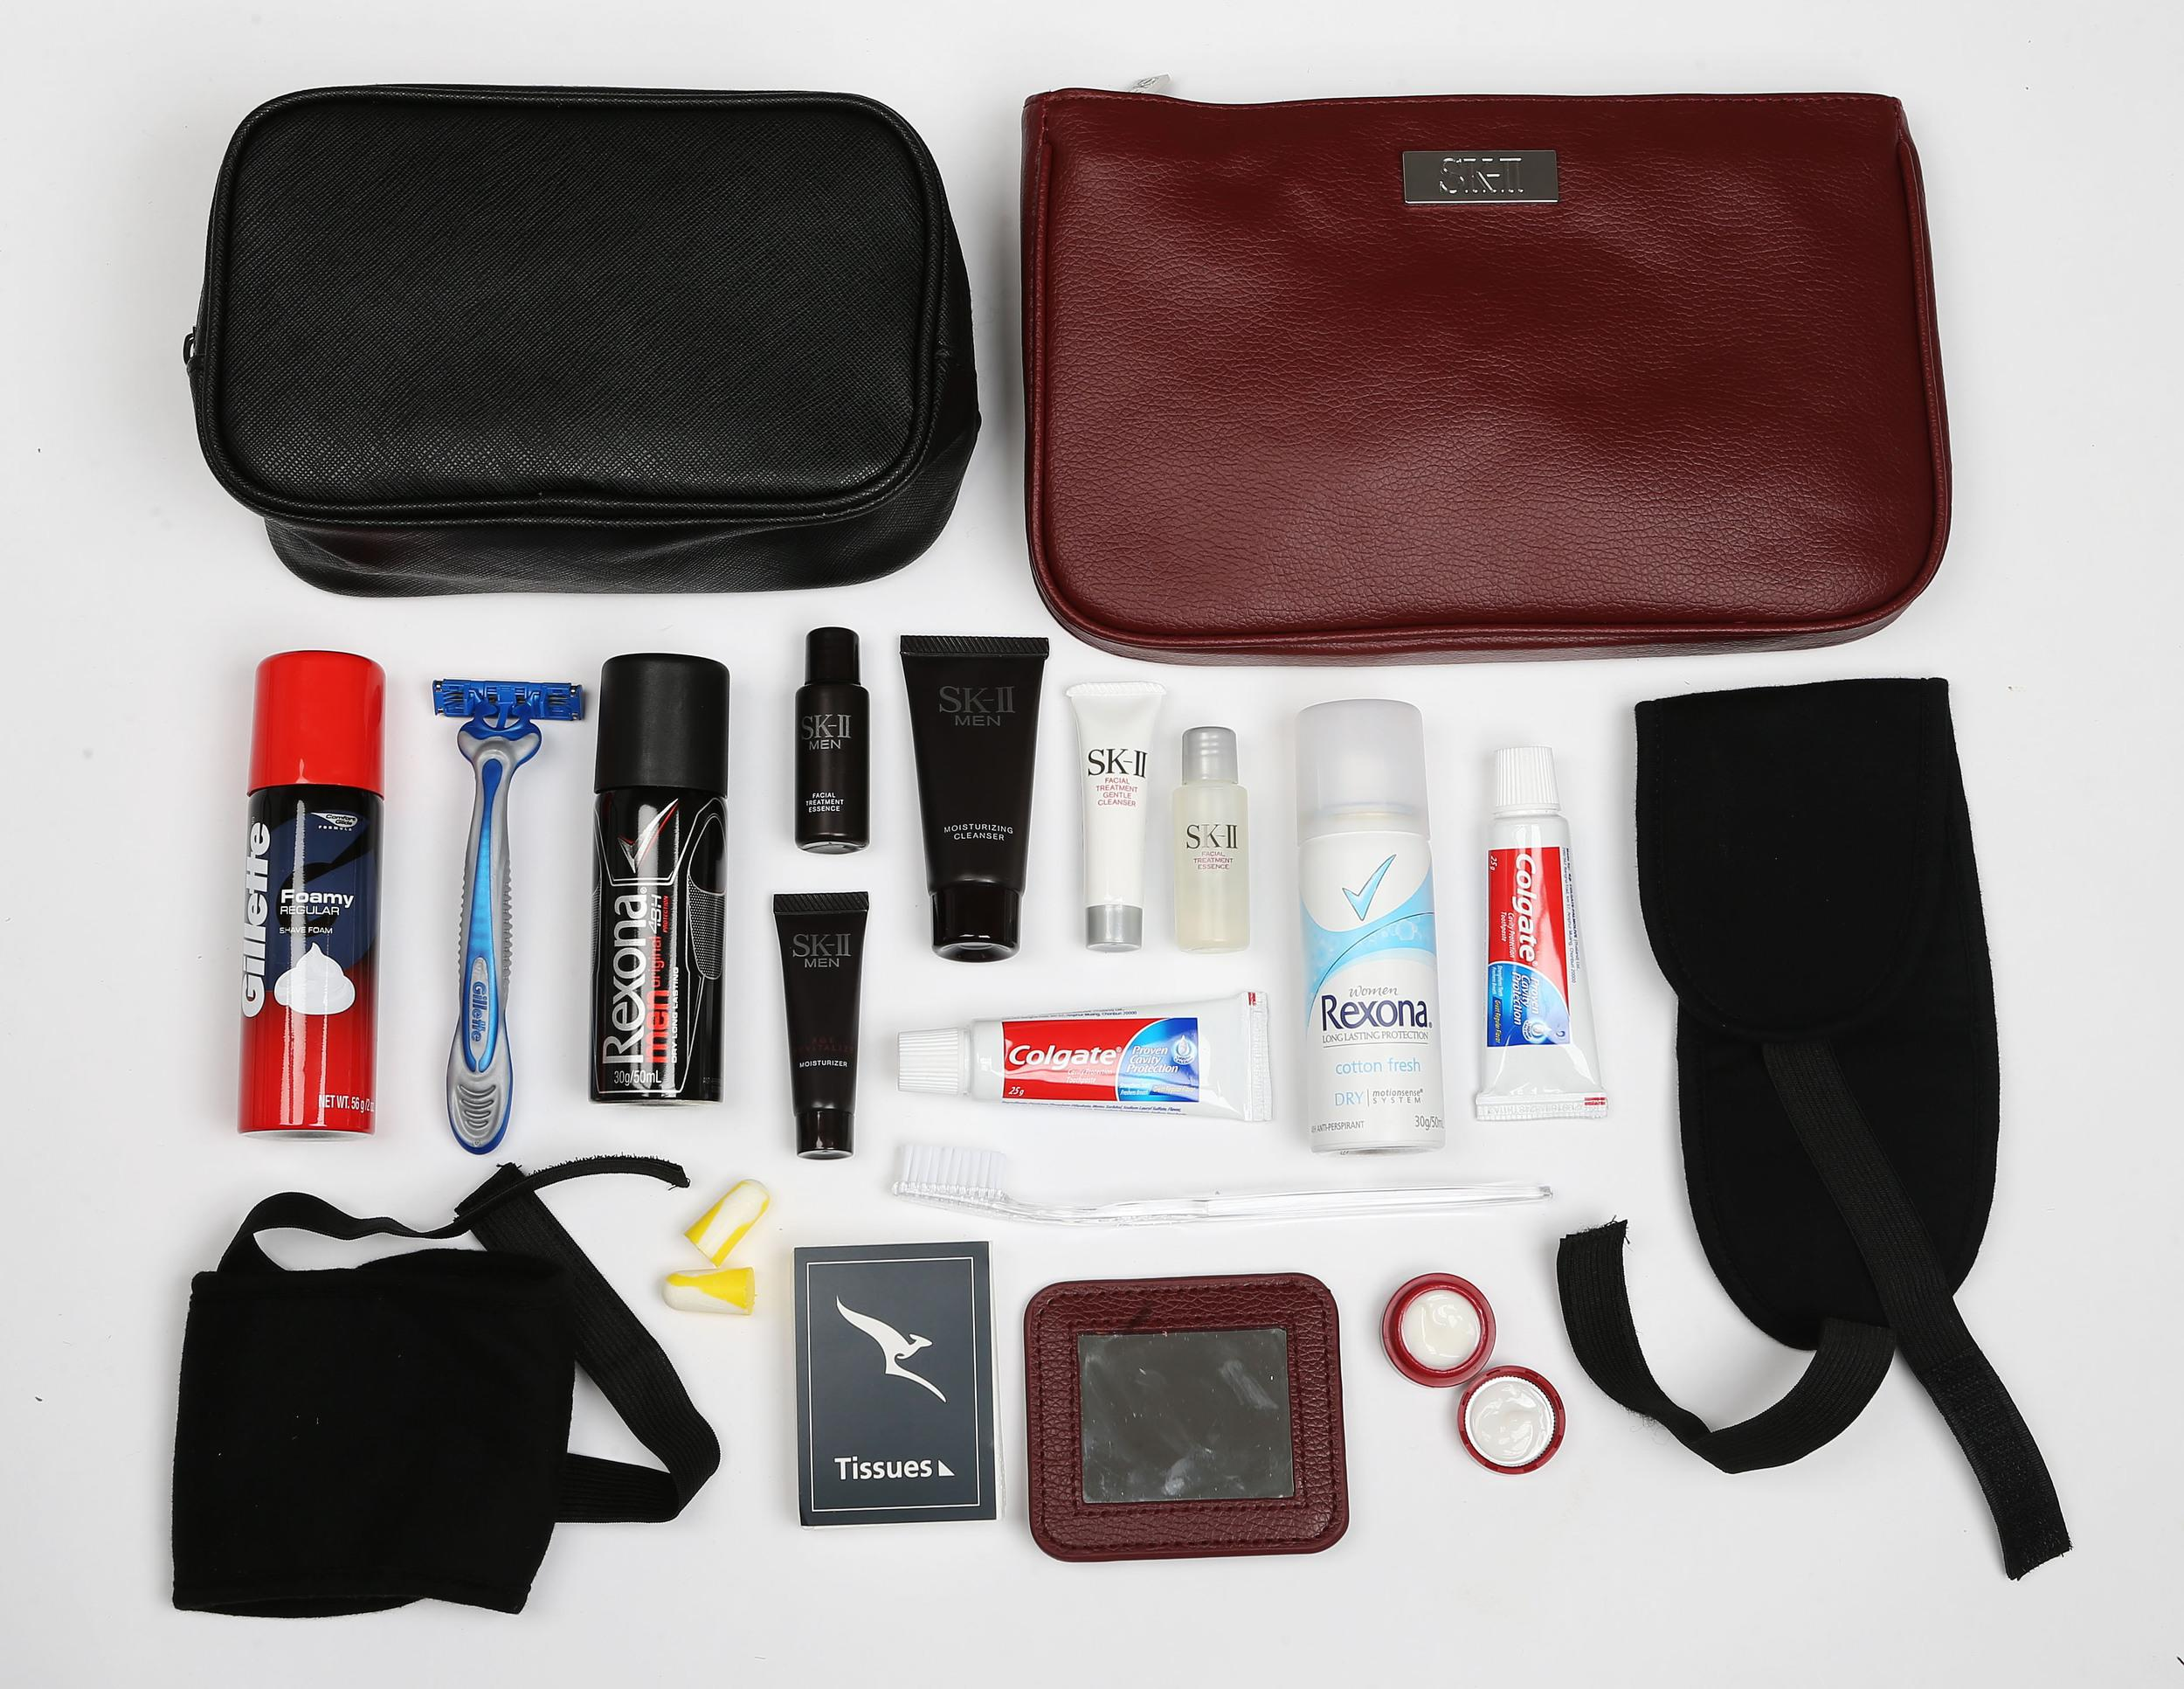 <p><strong>What do you get?</strong> Men's: Australian-designed toilet bag in black filled with SK-II Moisturising Cleanser, Age Revitalising Moisturiser and Facial Treatment Essence, eye mask, ear plugs, toothbrush, toothpaste, Gillette shave foam, Gillette razor, Rexona aerosol deodorant, voucher for an SK-II skin consultation and facial treatment mask through Myer and David Jones in Australia<br /> Women's: Clutch-sized Australian designed toilet bag in red filled with pocket mirror, SK-II Facial Treatment Gentle Cleanser, Facial Treatment Essence and Stempower Moisturiser, tissues, toothbrush, toothpaste, eye mask, ear plugs, Rexona aerosol deodorant, voucher for an SK-II skin consultation and facial treatment mask through Myer and David Jones in Australia.<br /> <strong>Best bit of the kit?</strong> The mirror.</p>